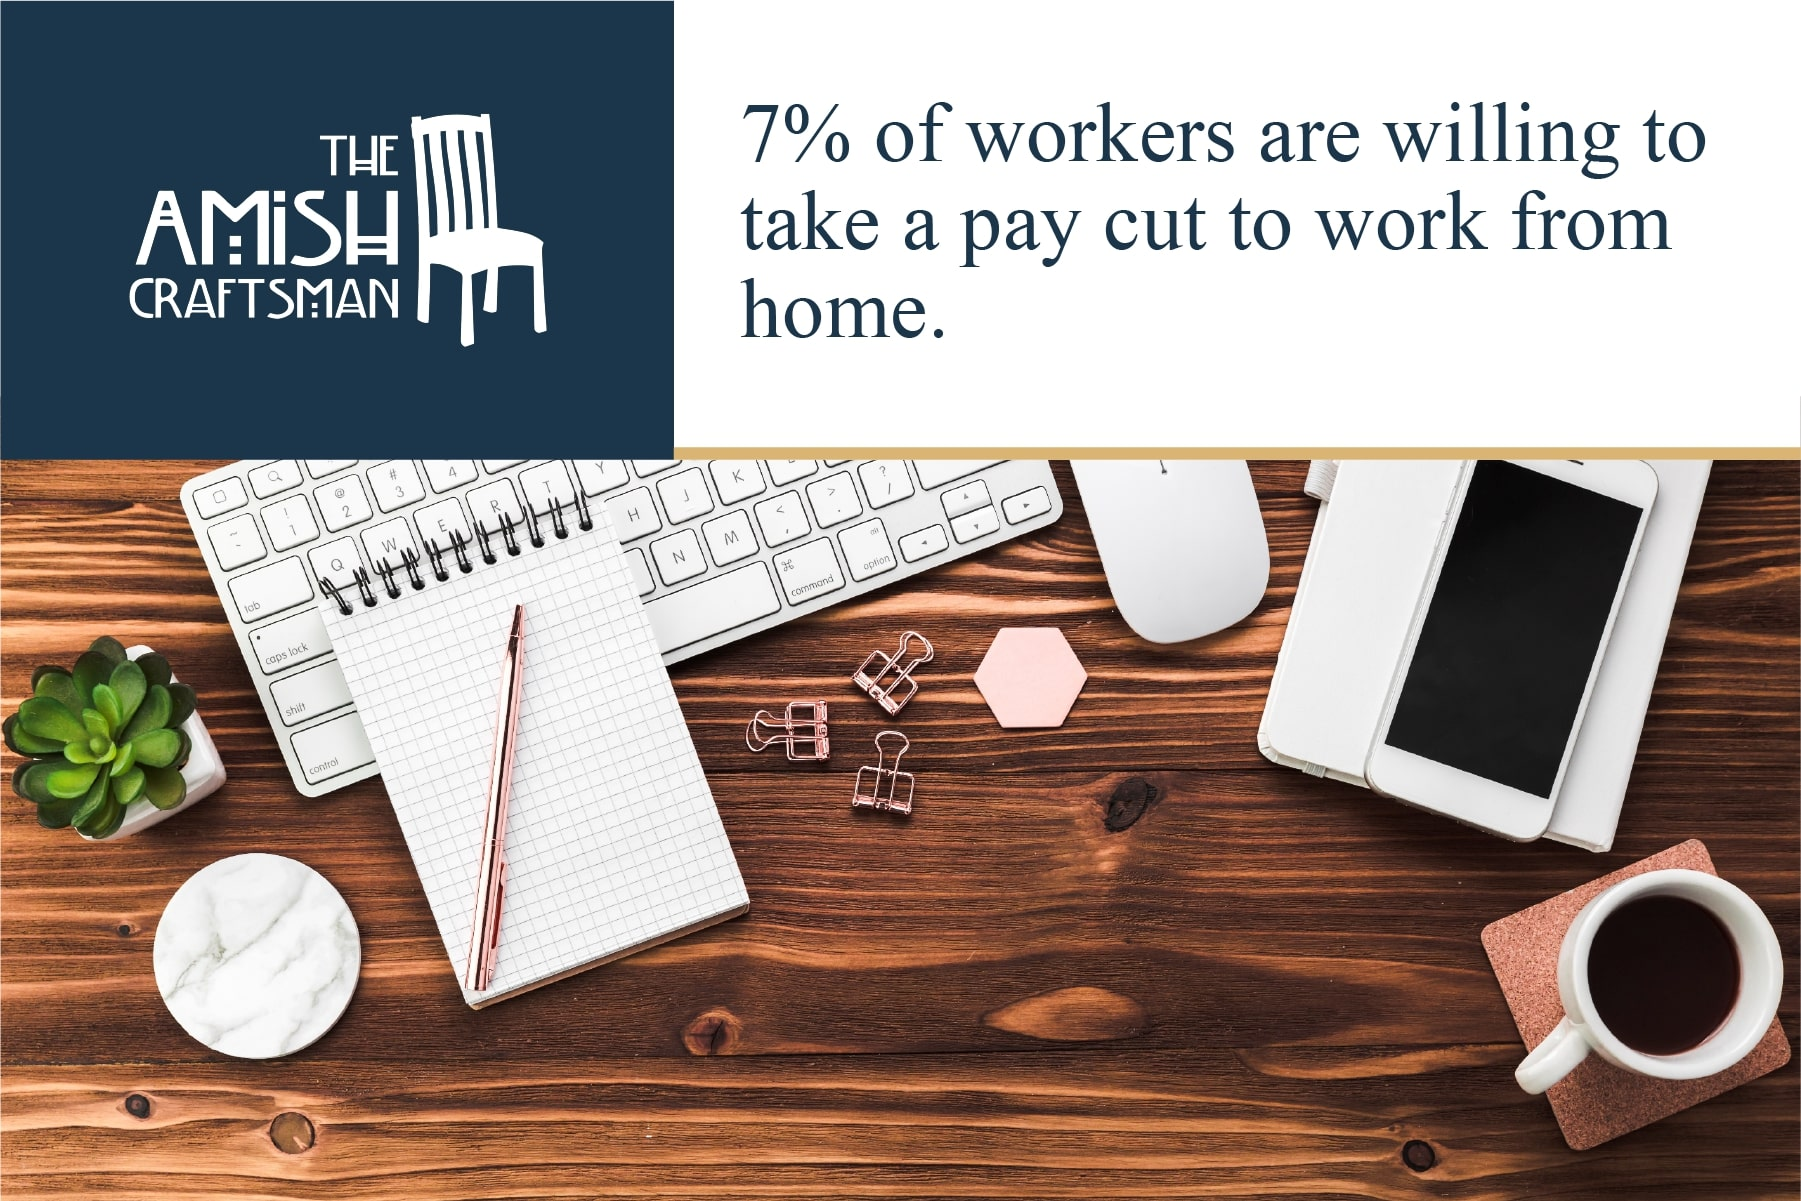 Remote workers are willing to take pay cuts